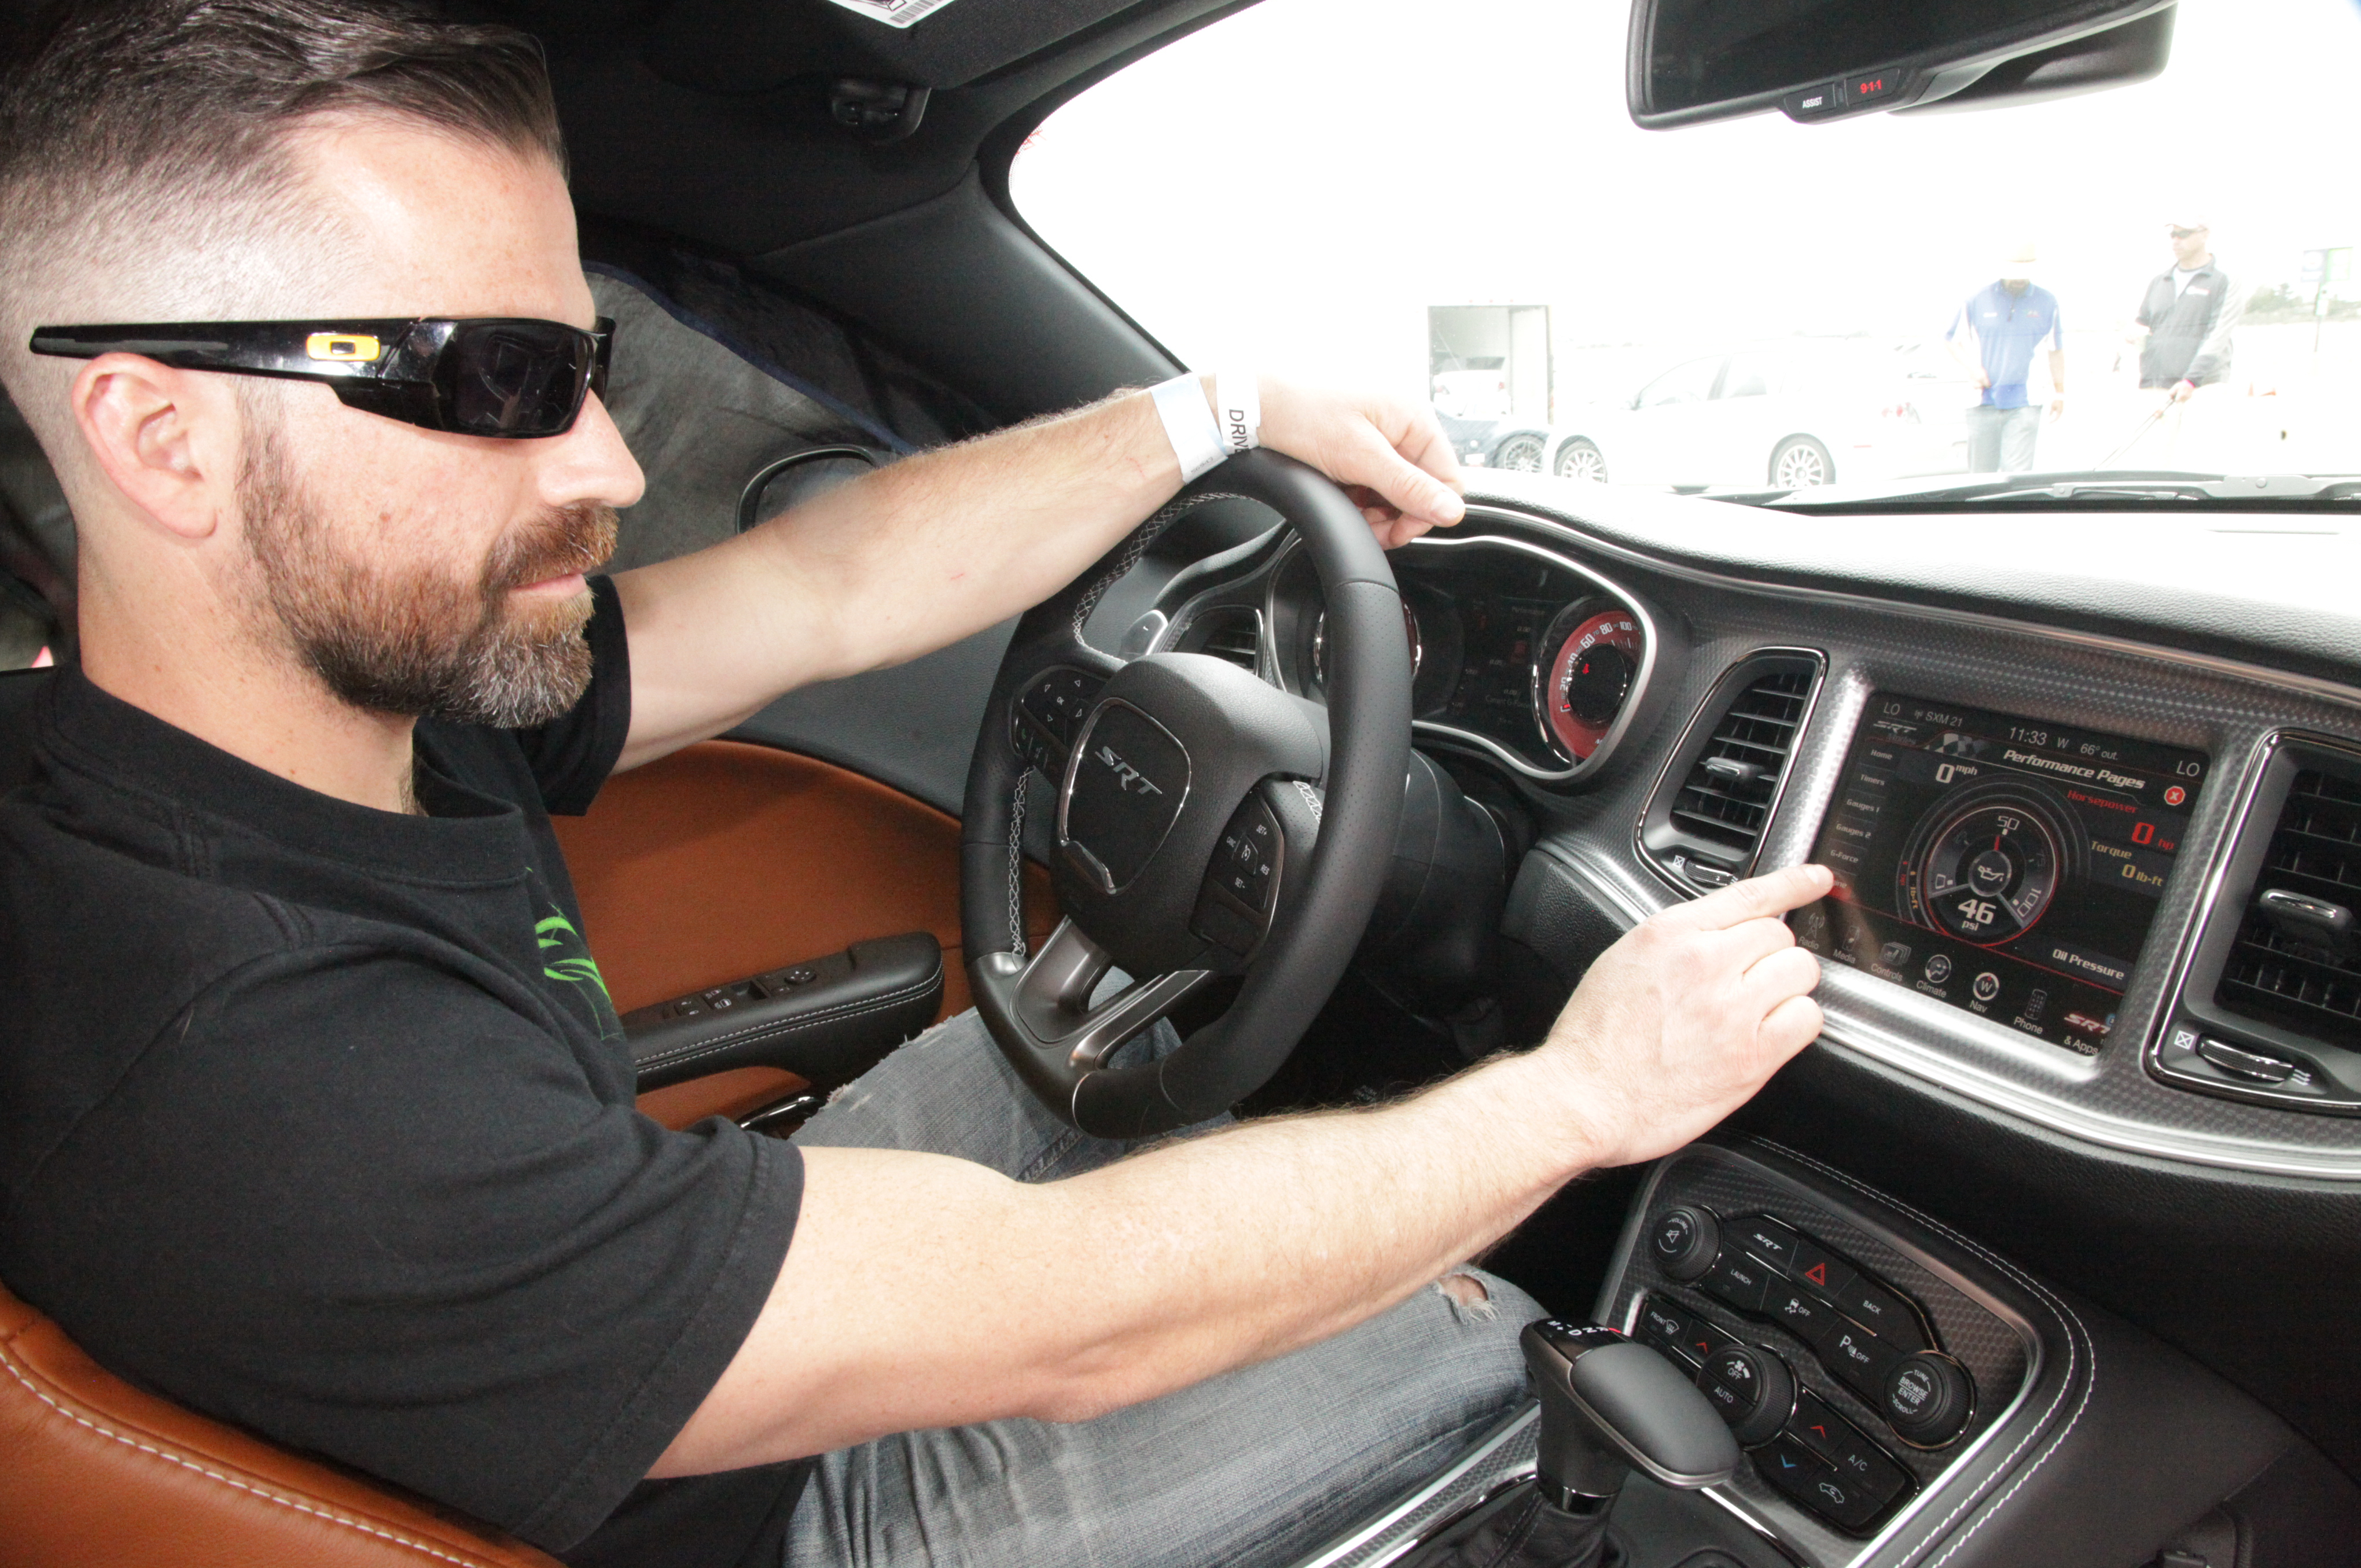 15 Things You Didnt Know About Dodges Performance Pages Hot Rod 2013 Dodge Charger Beats Car Audio Wiring Color Codes We Show How To Get The Most Out Of Your Srt Hellcat Or 64l Scat Pack